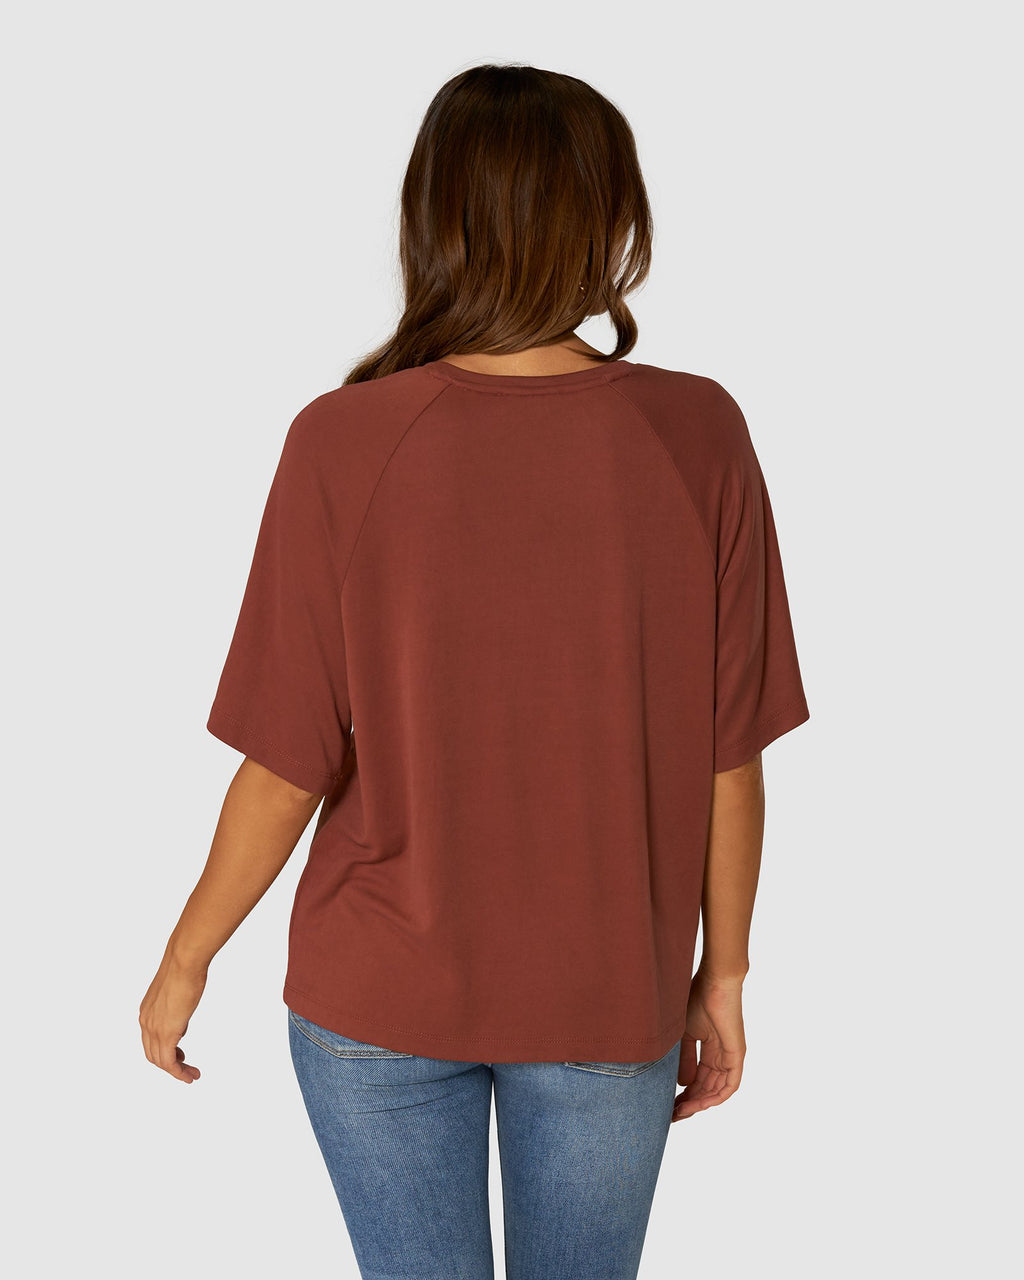 Colada Beaded Oversized Tee - Burnt Rose/Gold